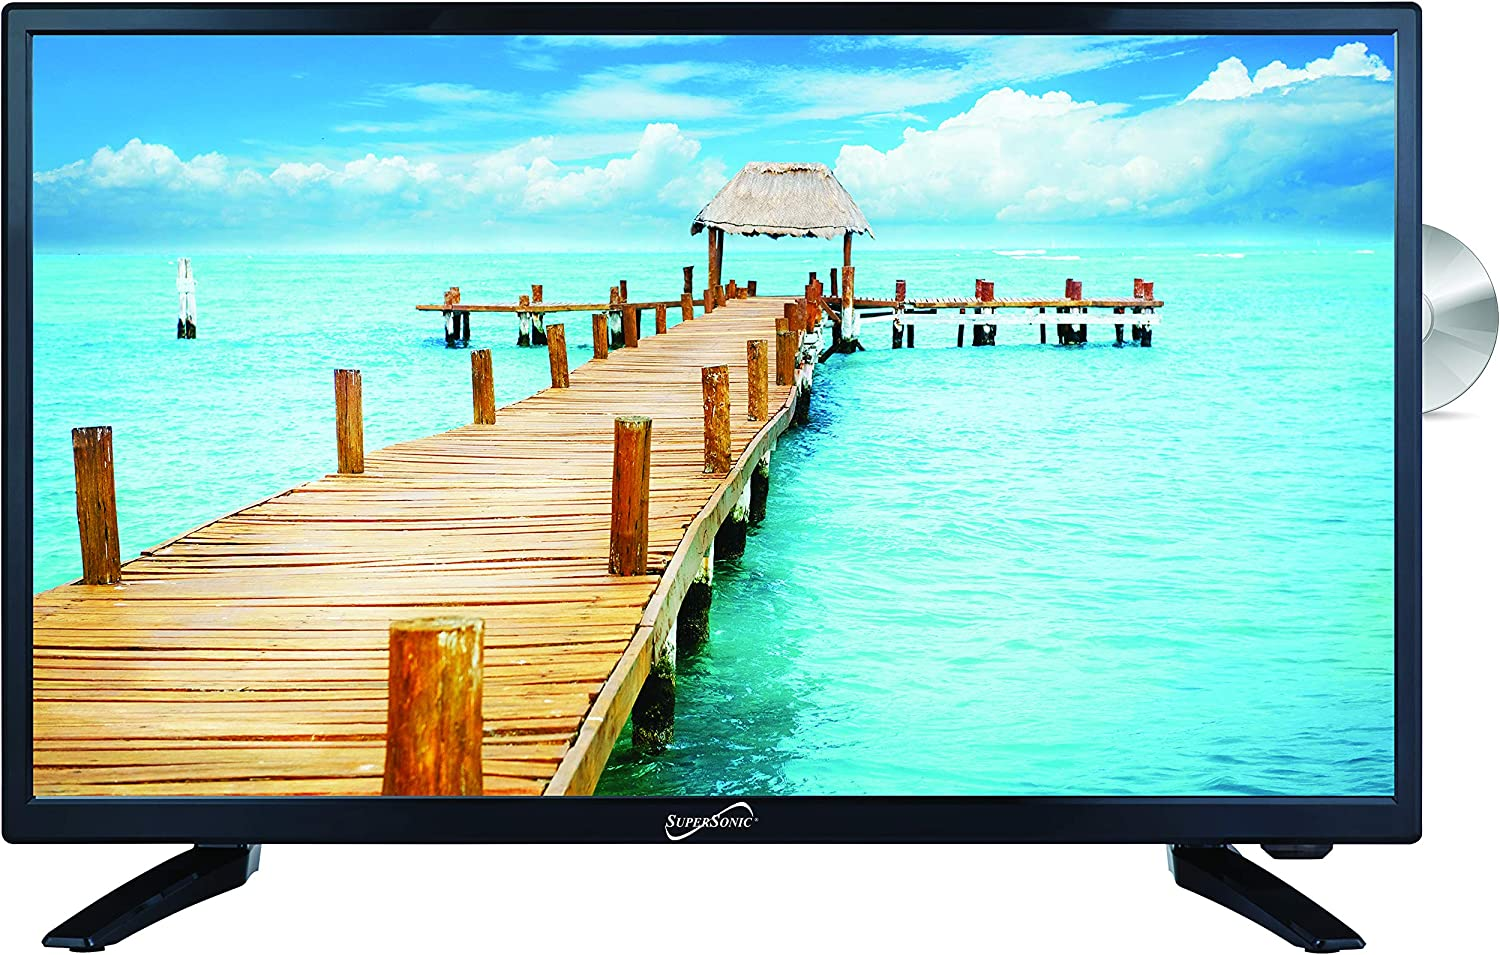 SuperSonic SC-2412 Low price LED Widescreen HDTV 24